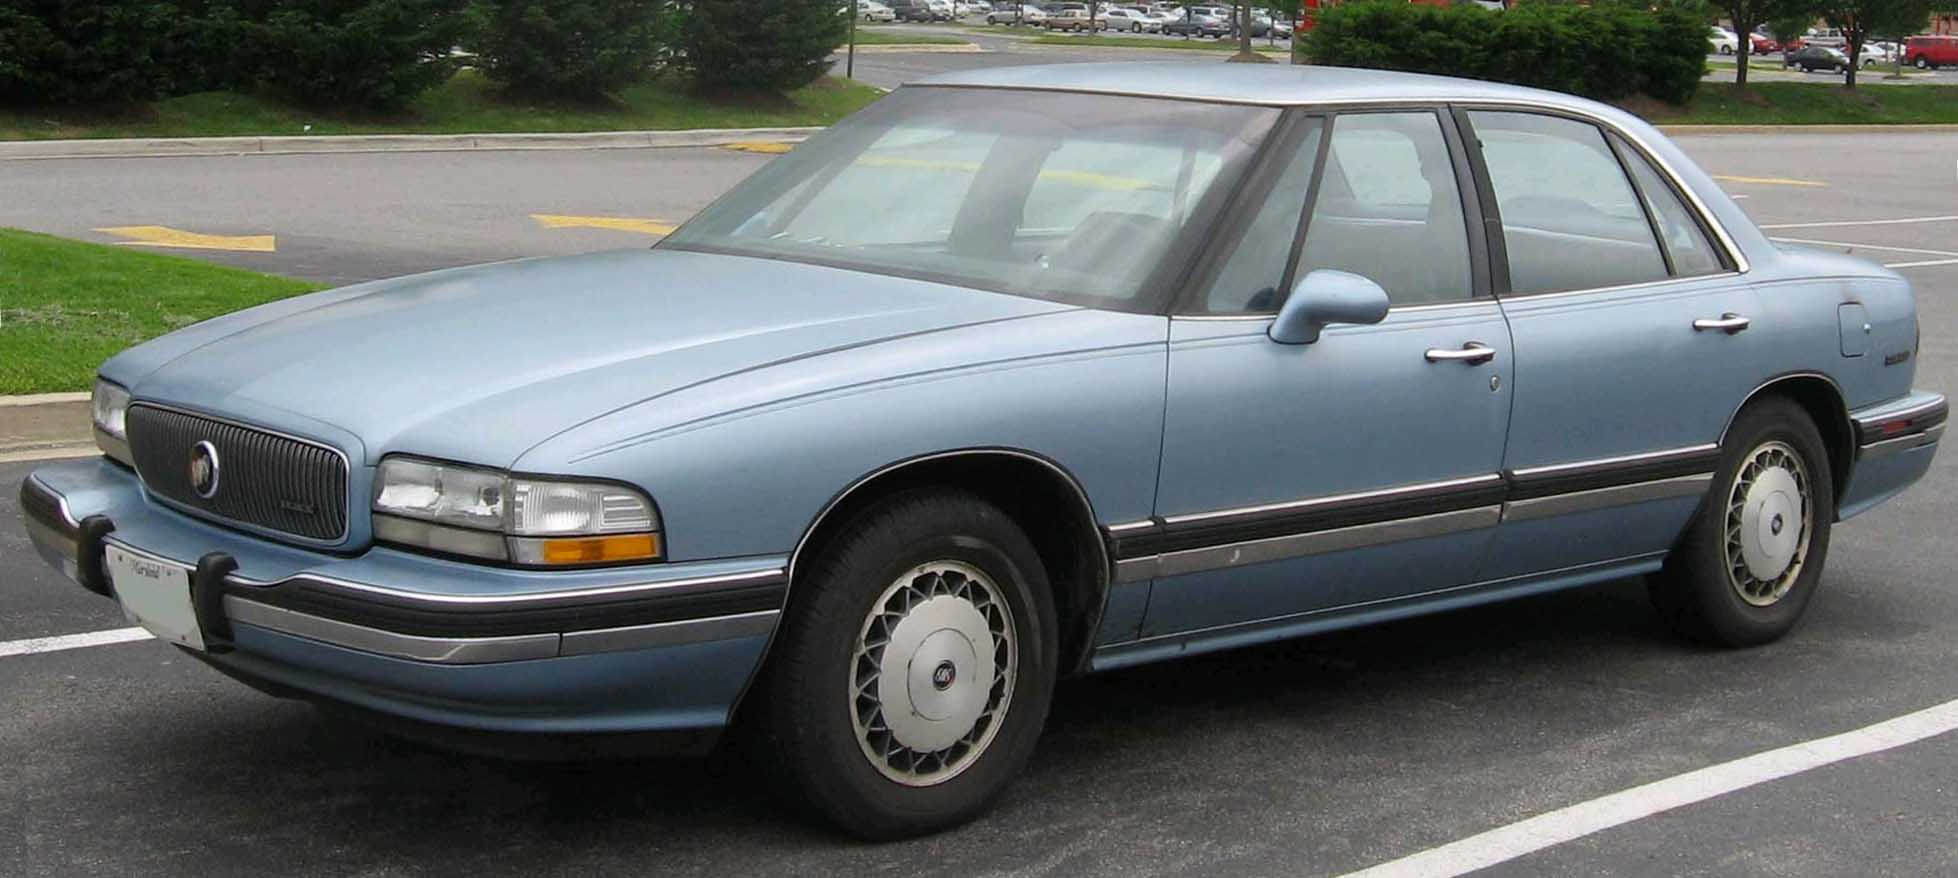 hight resolution of 1996 buick lesabre custom photo 1